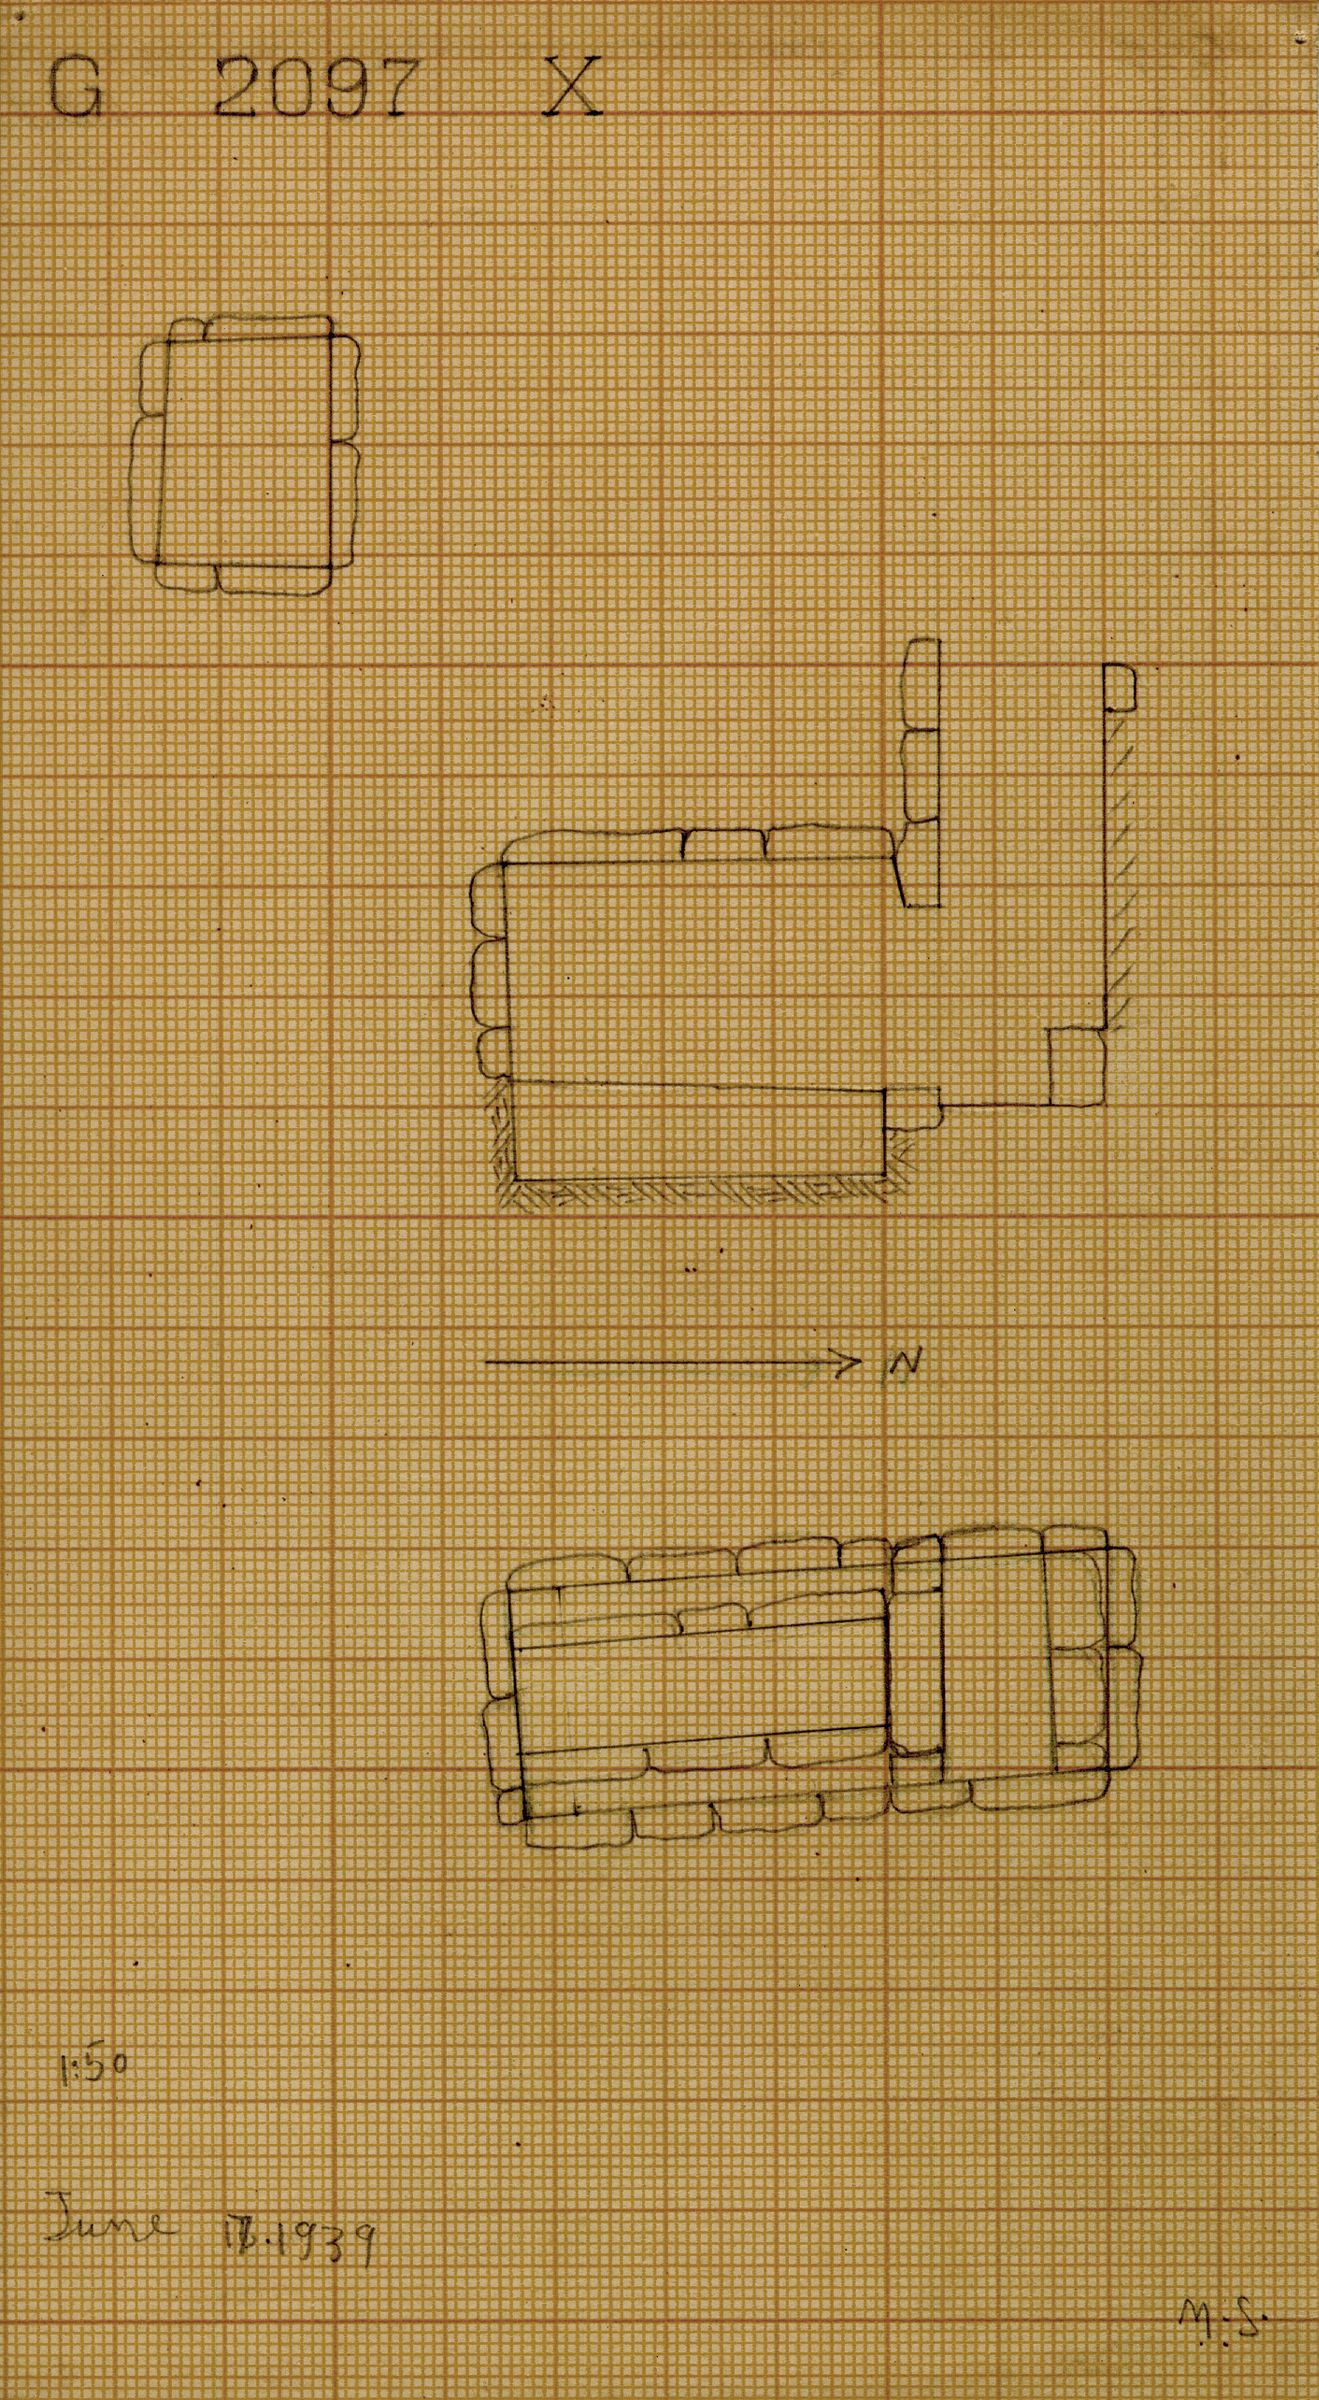 Maps and plans: G 2097, Shaft X